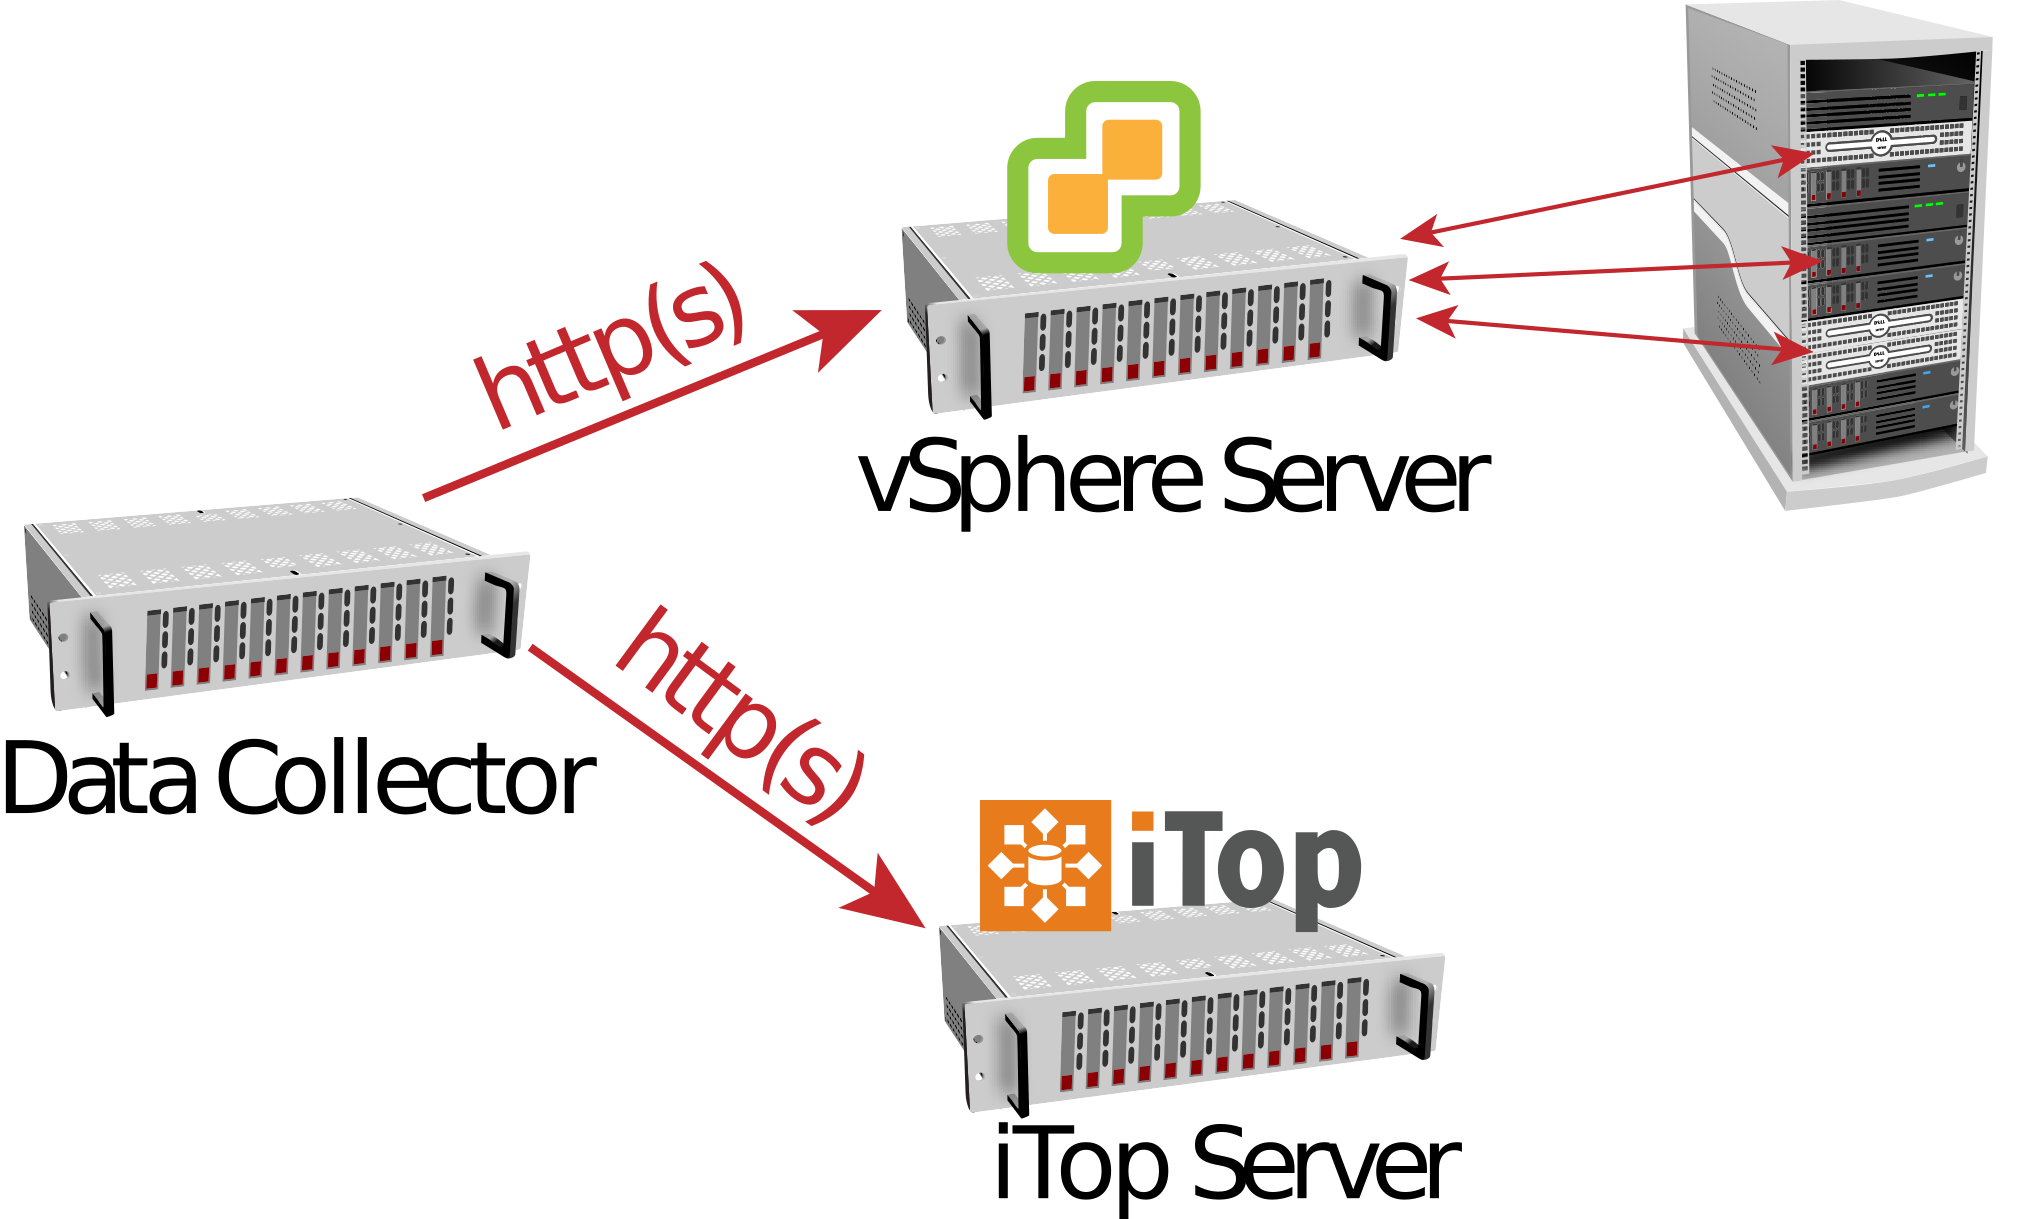 vSphere Data Collector connections